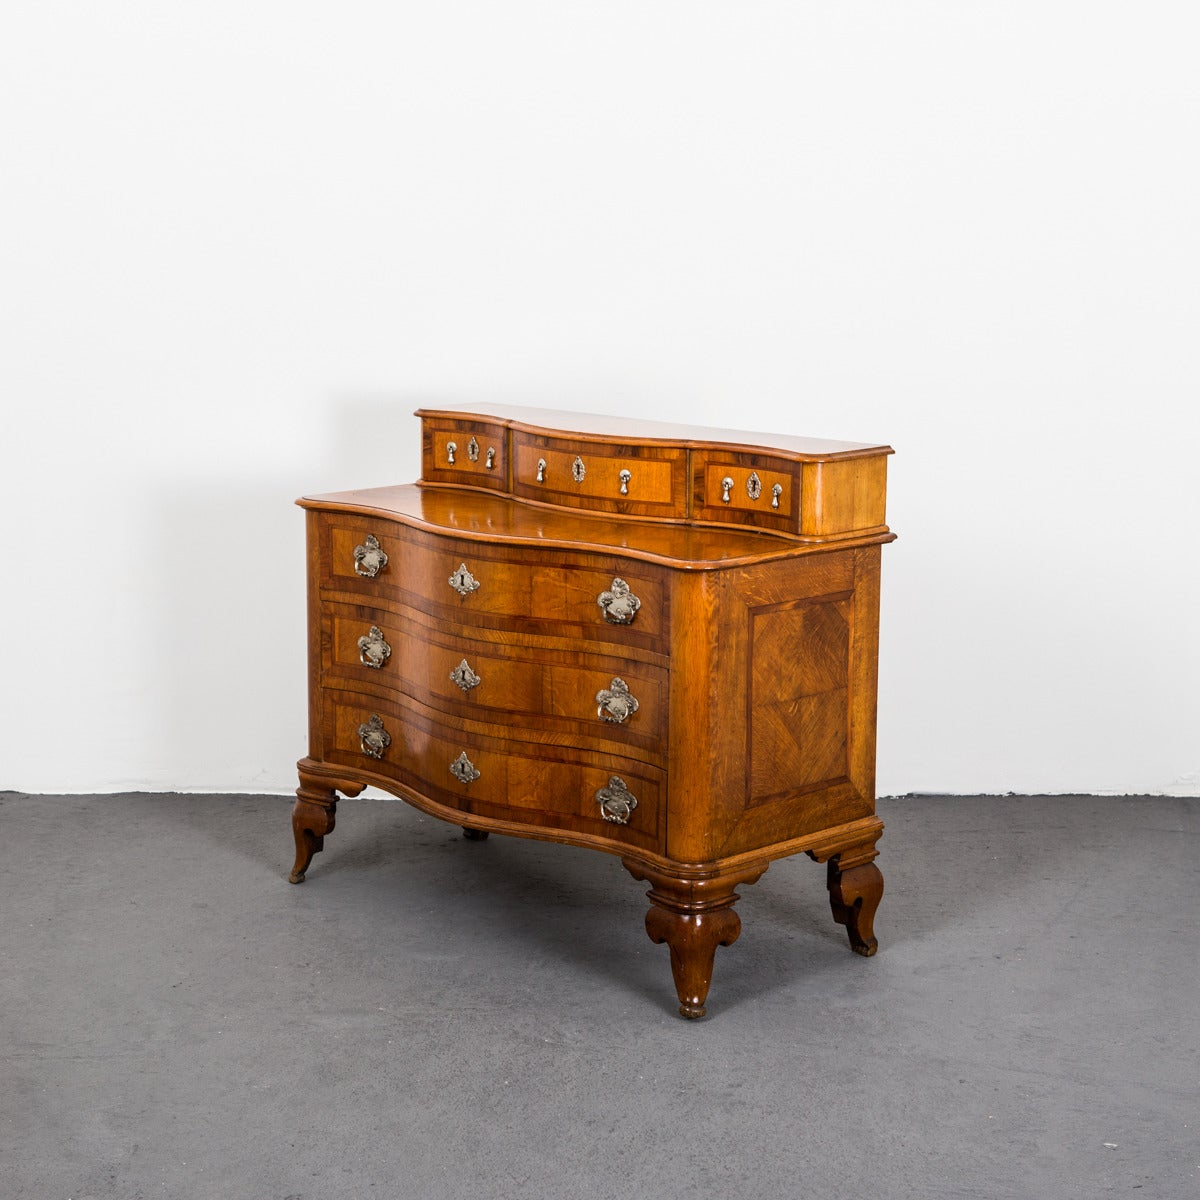 A late baroque style chest of drawers with silver hardware. 3 larger drawers and 3 smaller drawers. Made during the 20th Century.